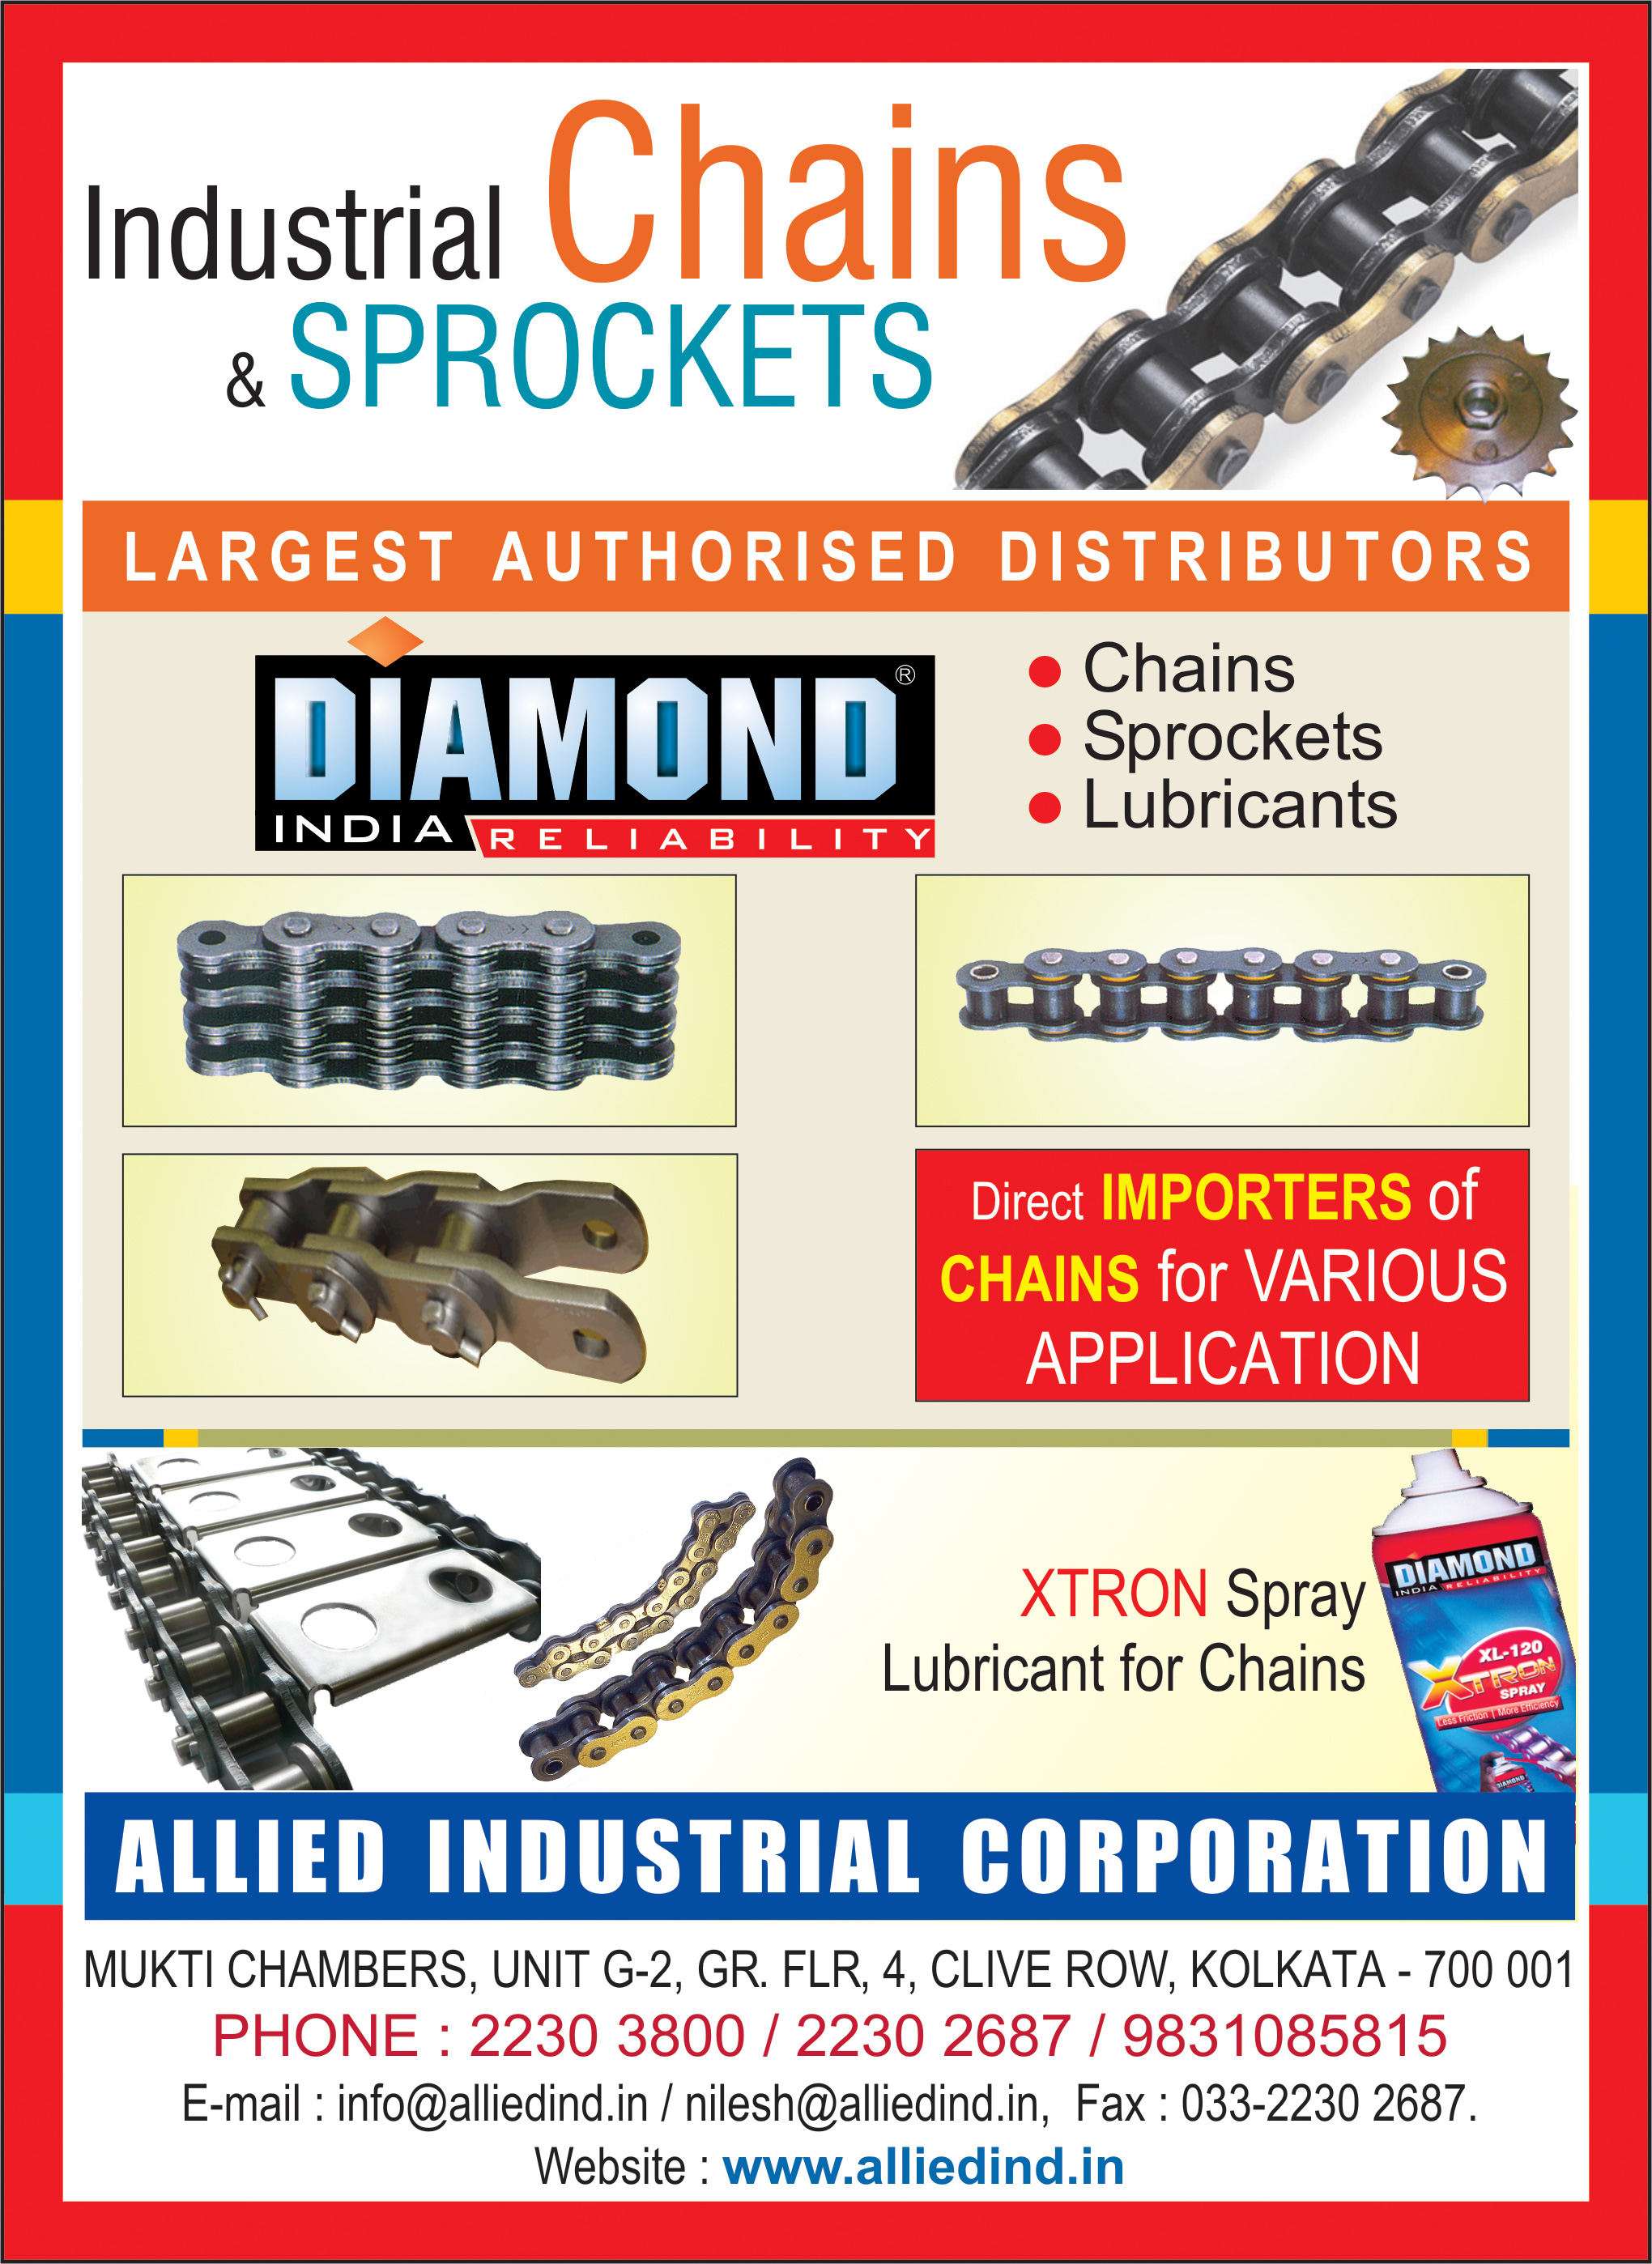 Chains and Sprockets, ALLIED INDUSTRIAL CORPORATION, Kolkata,  Yellow Pages, Kolkata, West Bengal